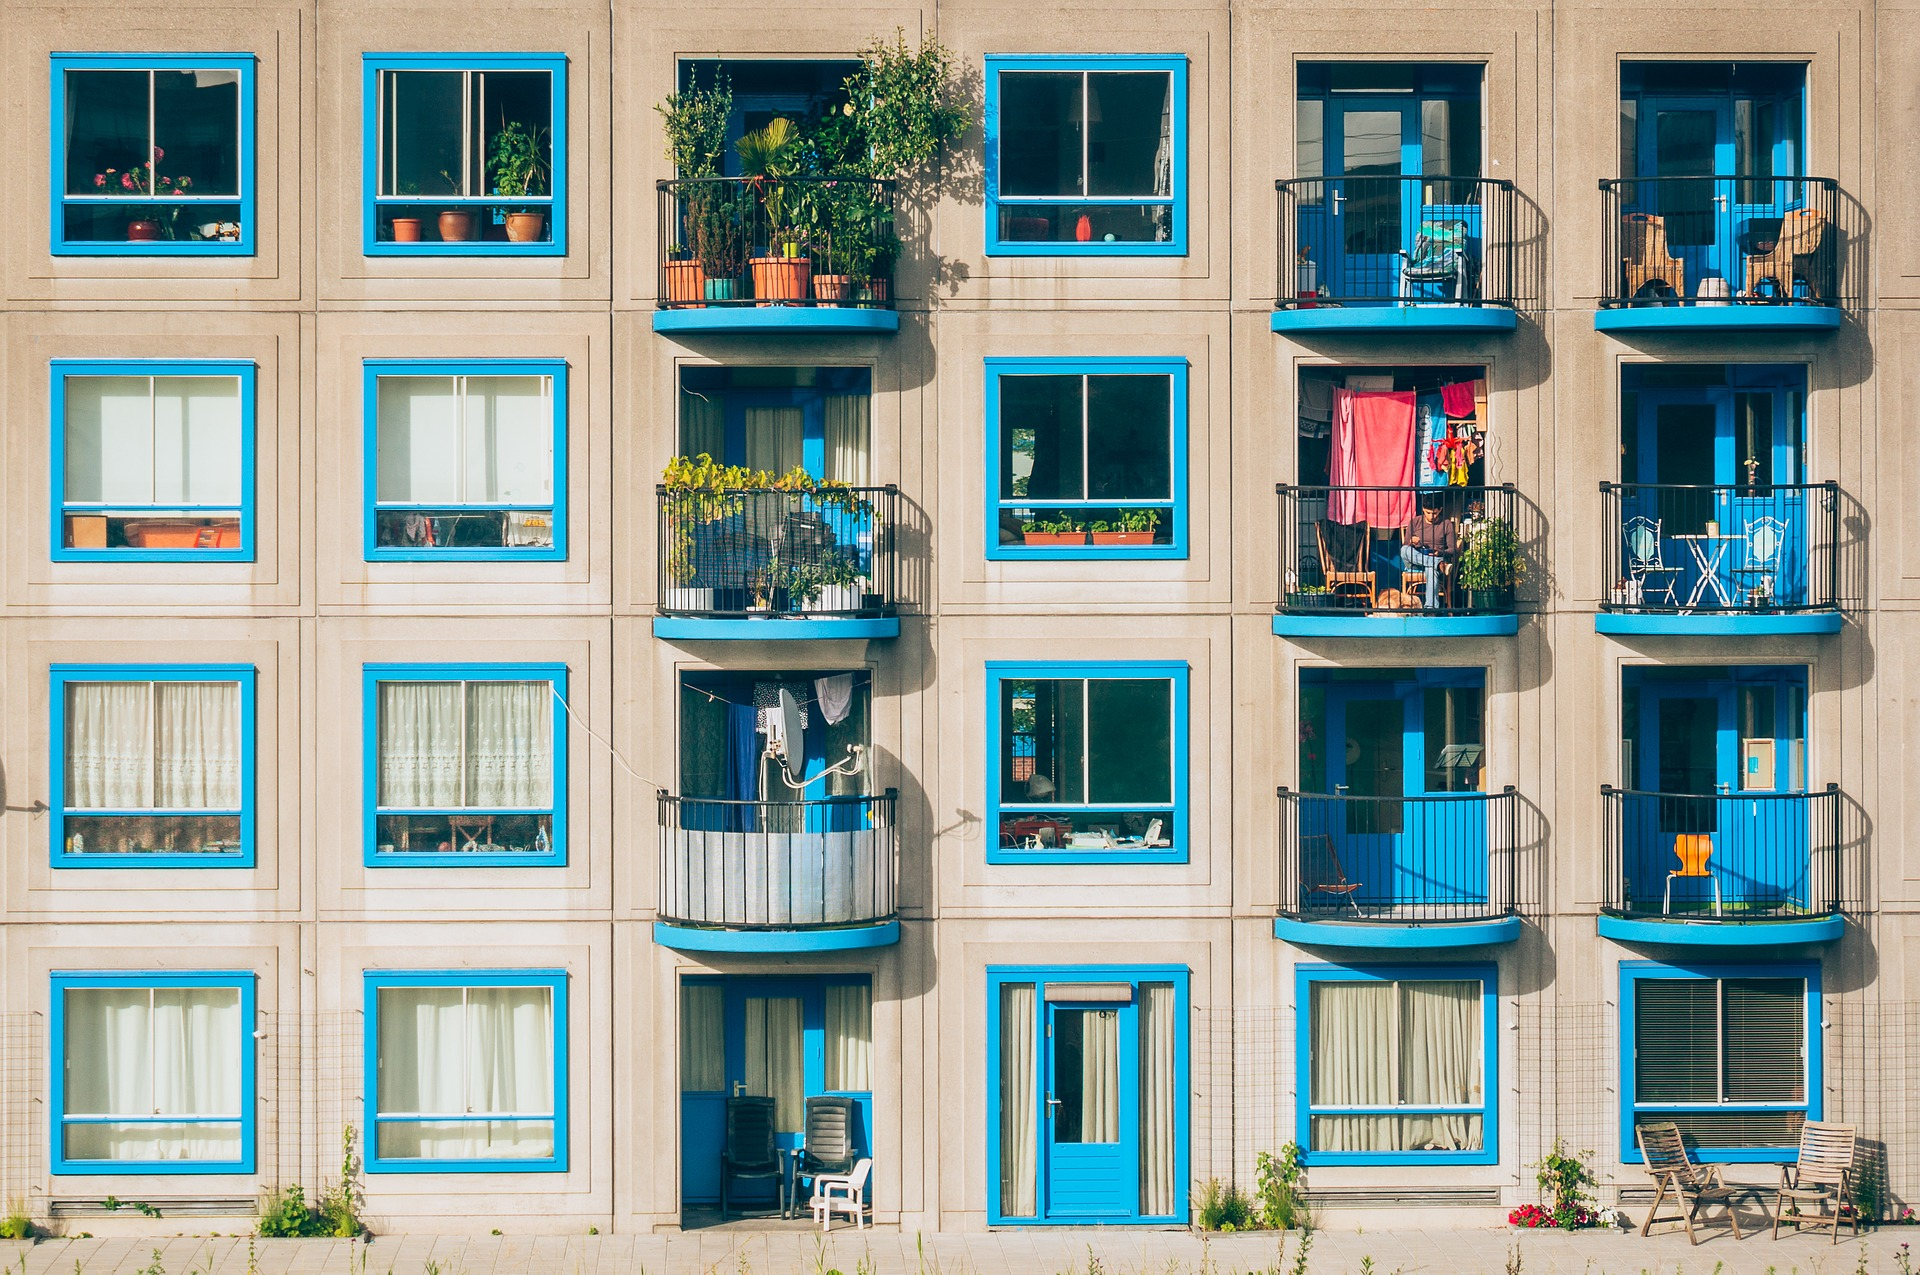 Click to play: The Biden Administration's Housing Policy Moves